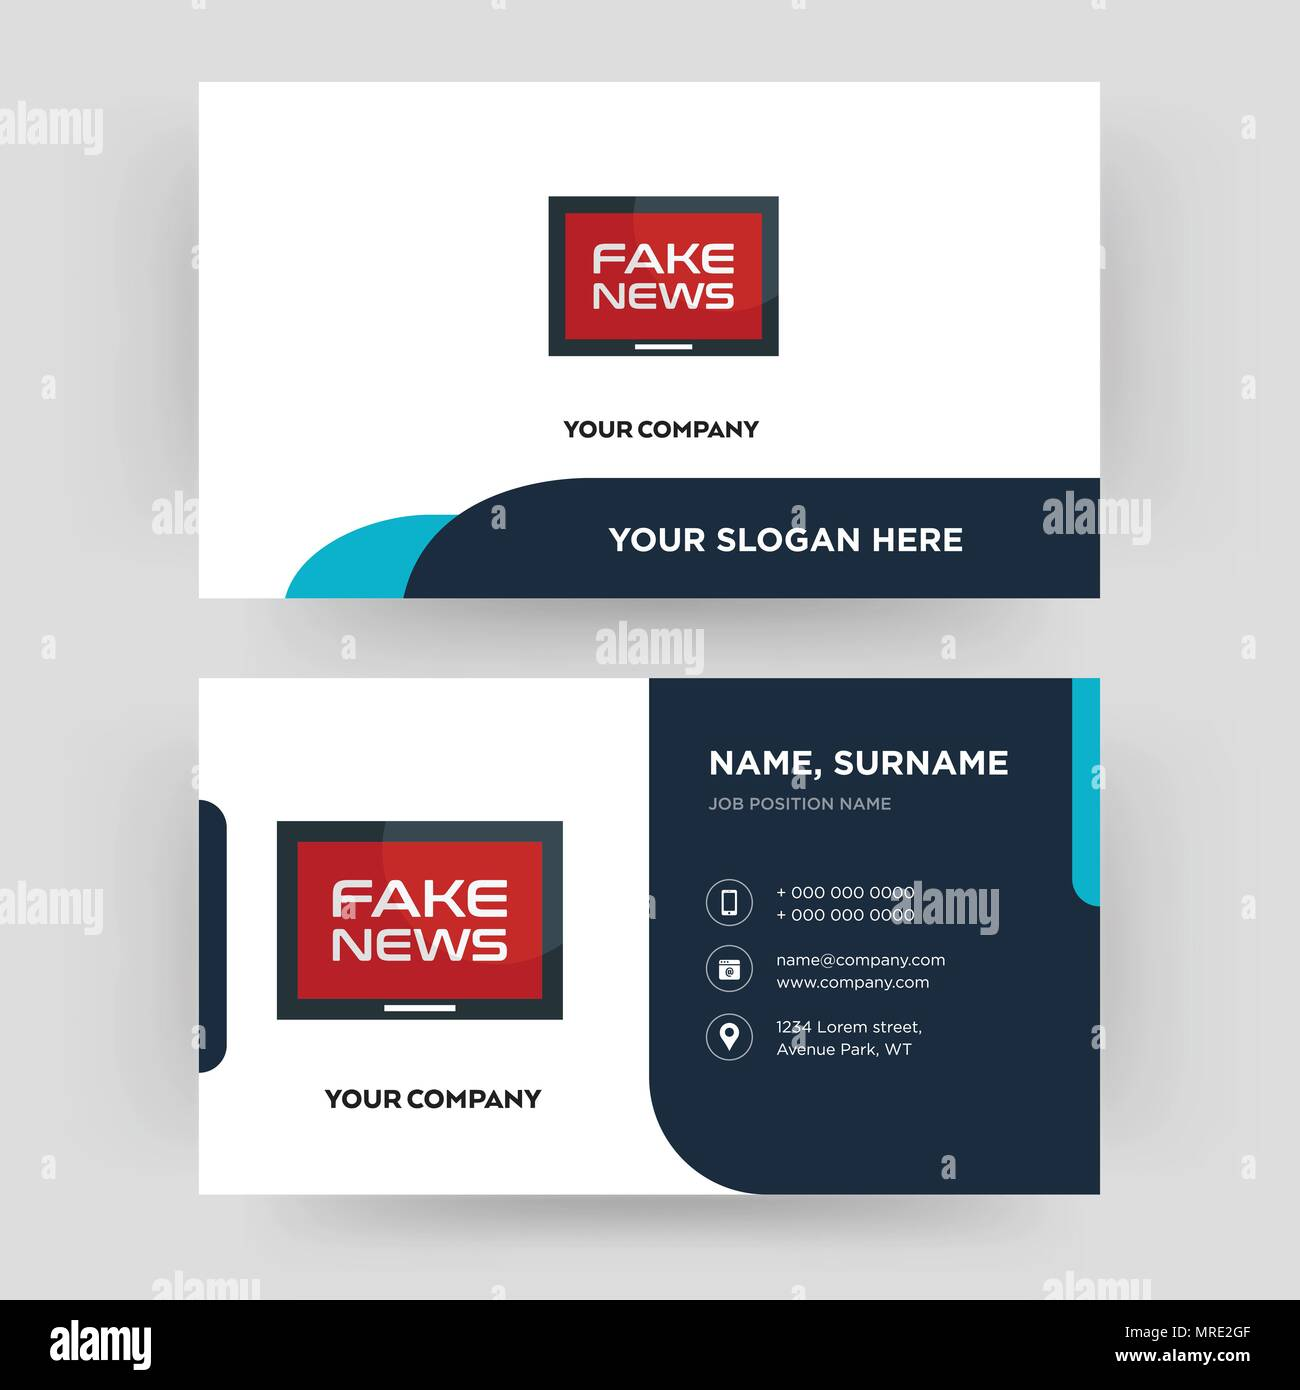 fake news business card design template visiting for your company modern creative and clean identity card vector - Fake Business Cards